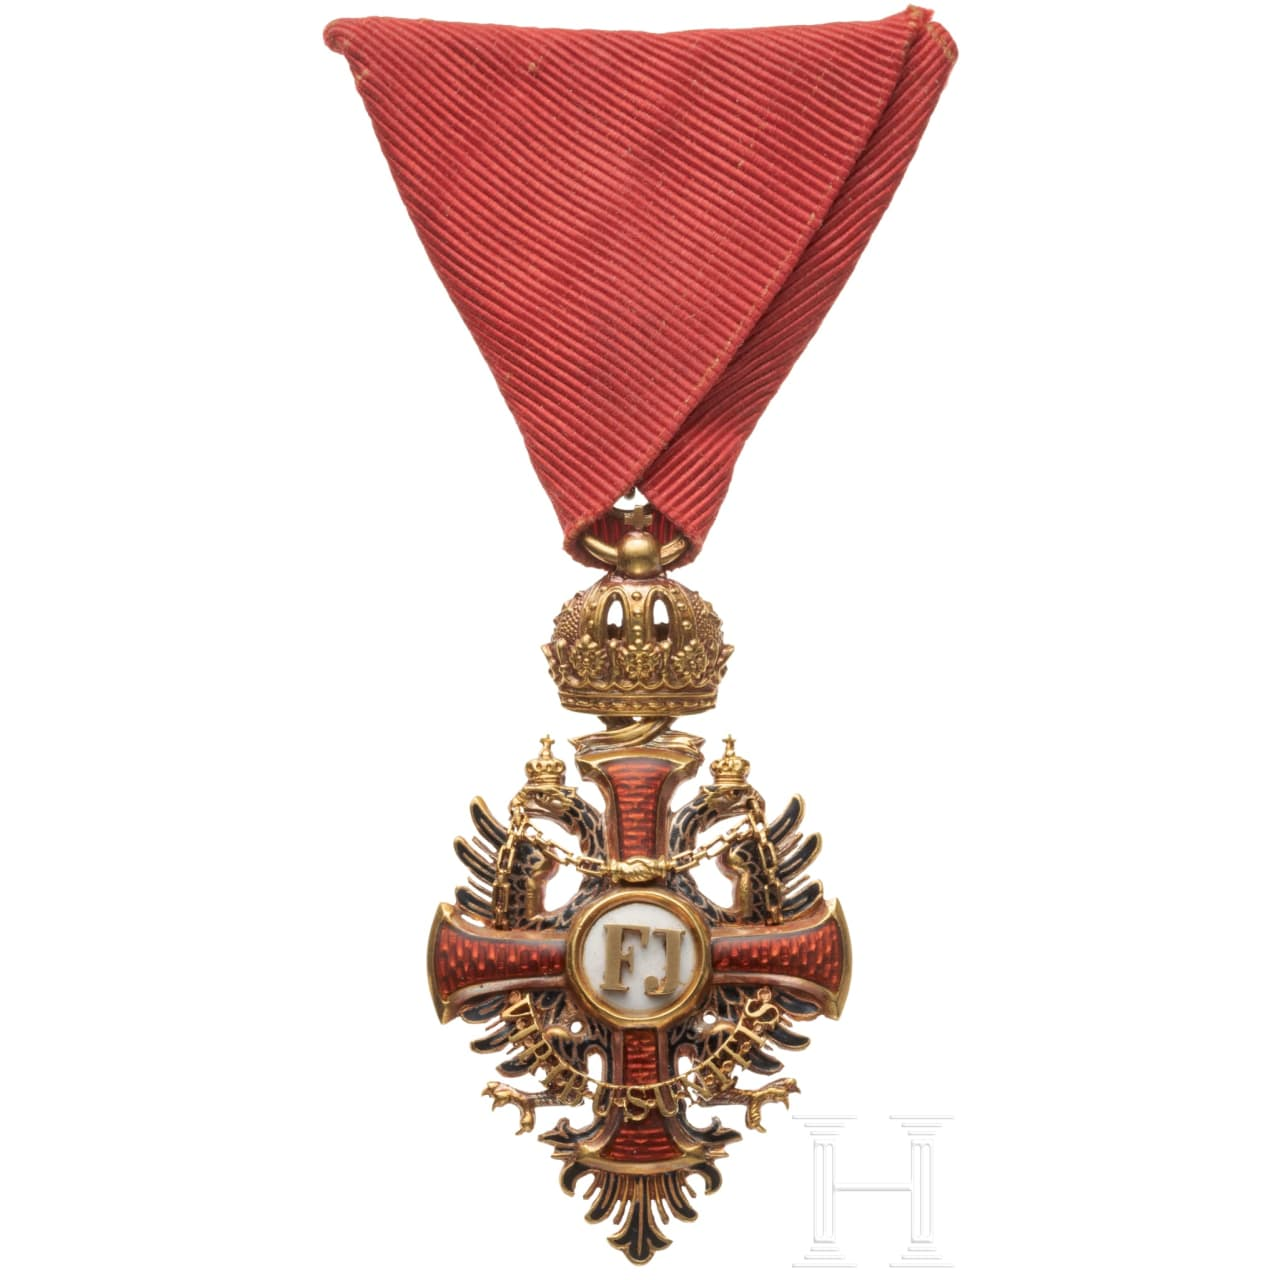 Order of Franz Joseph – a Knight's Cross